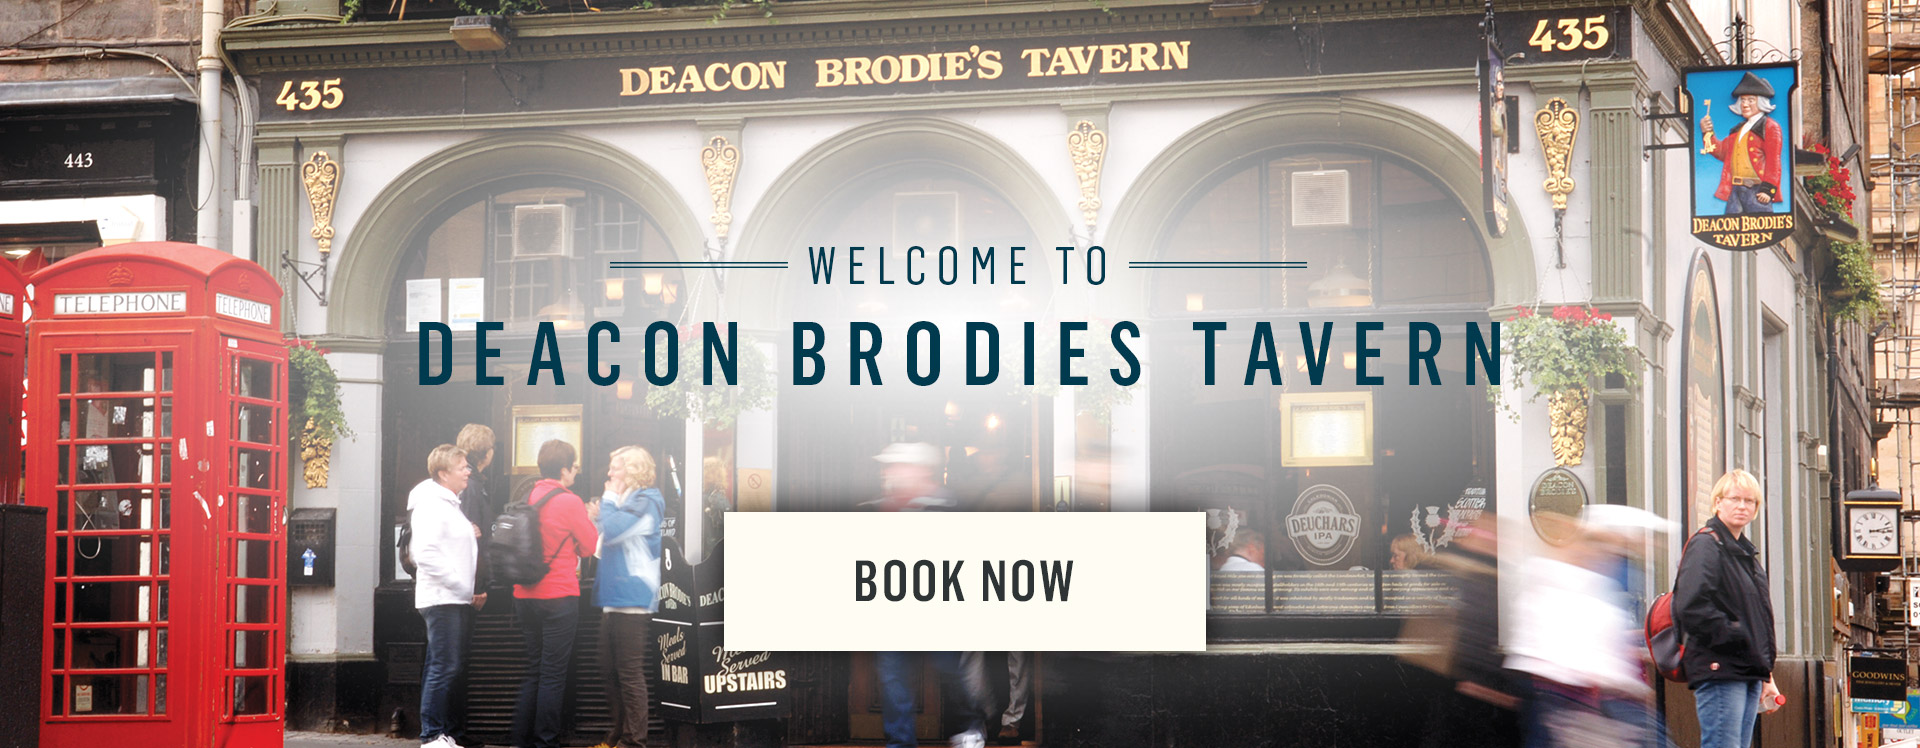 Welcome to Deacon Brodies Tavern - Book Now